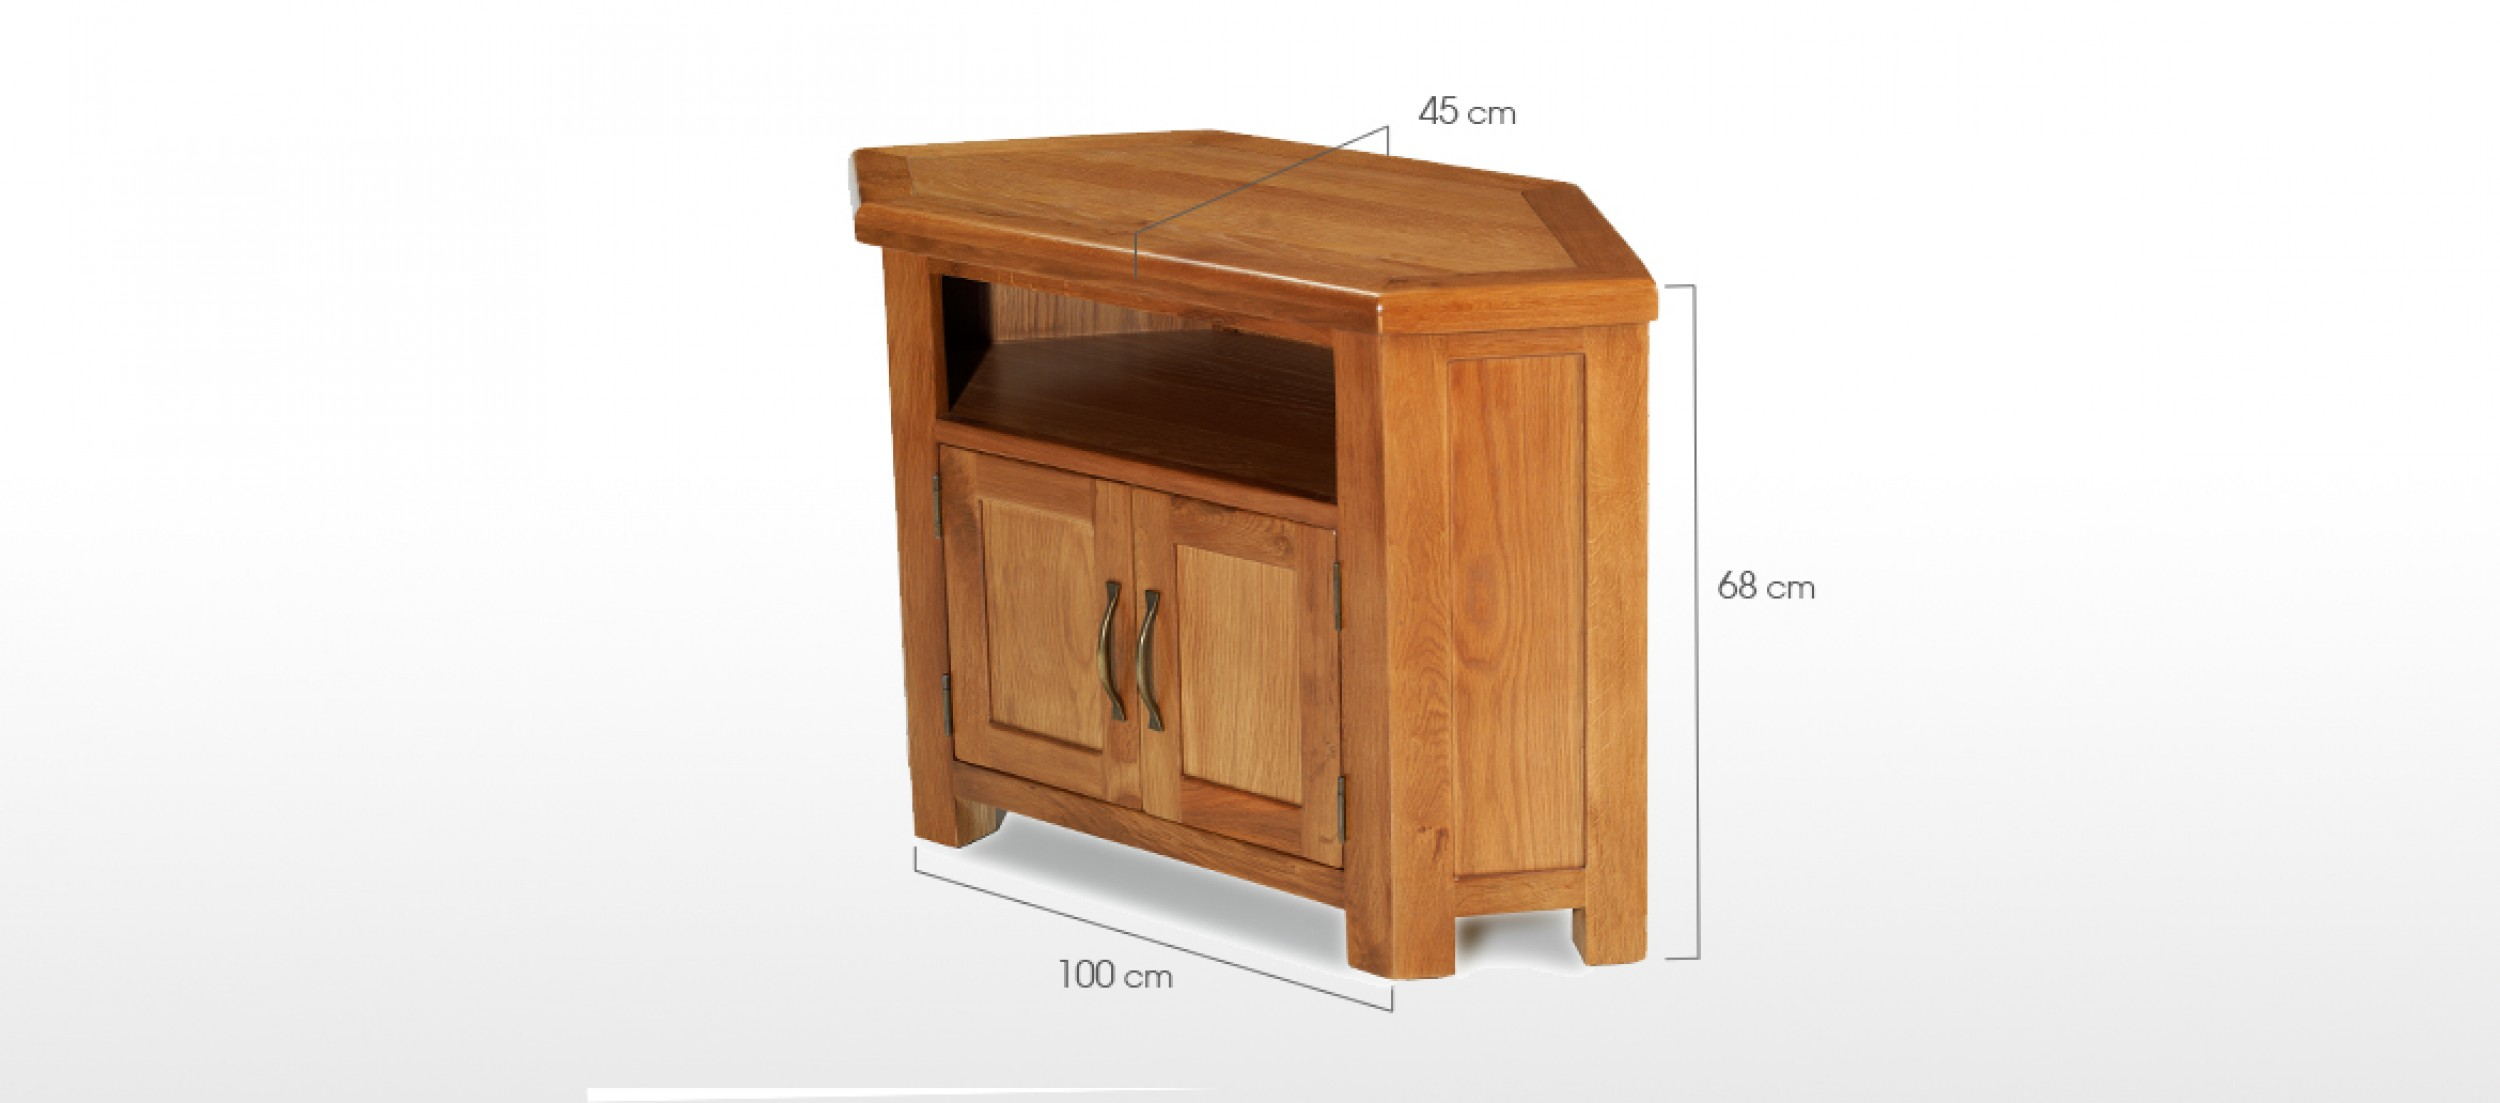 barham oak petite corner tv unit quercus living. Black Bedroom Furniture Sets. Home Design Ideas